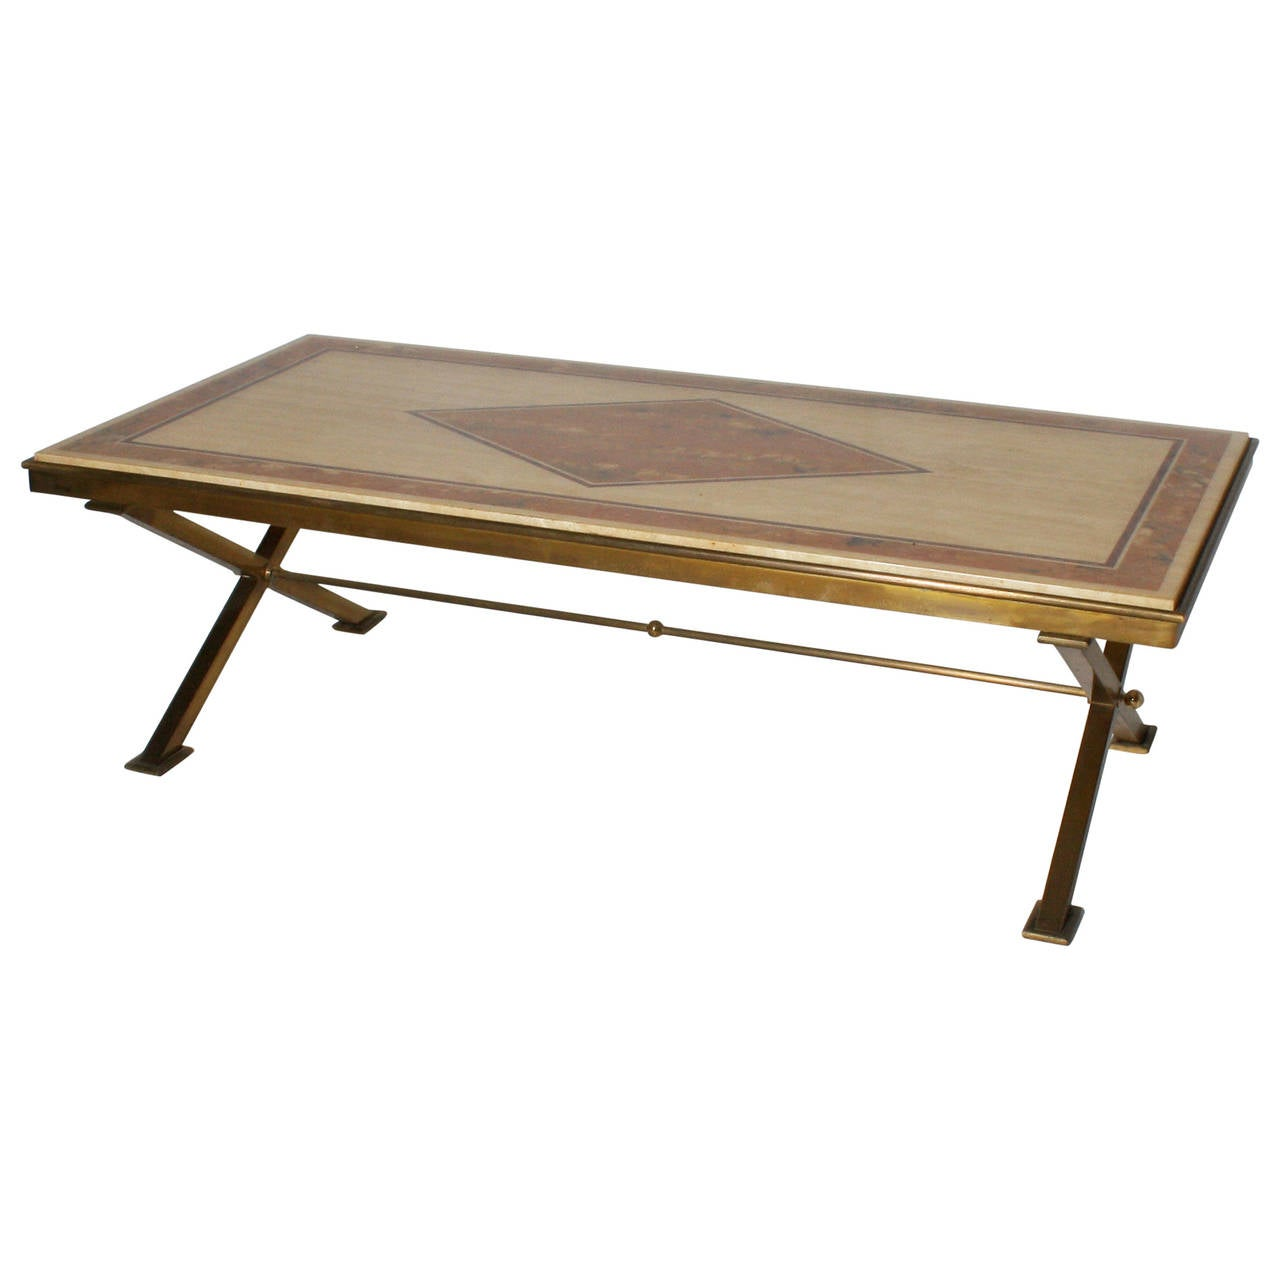 1950s Bronze X Base Coffee Table With Travertine Top And Faux Marble By Jansen At 1stdibs